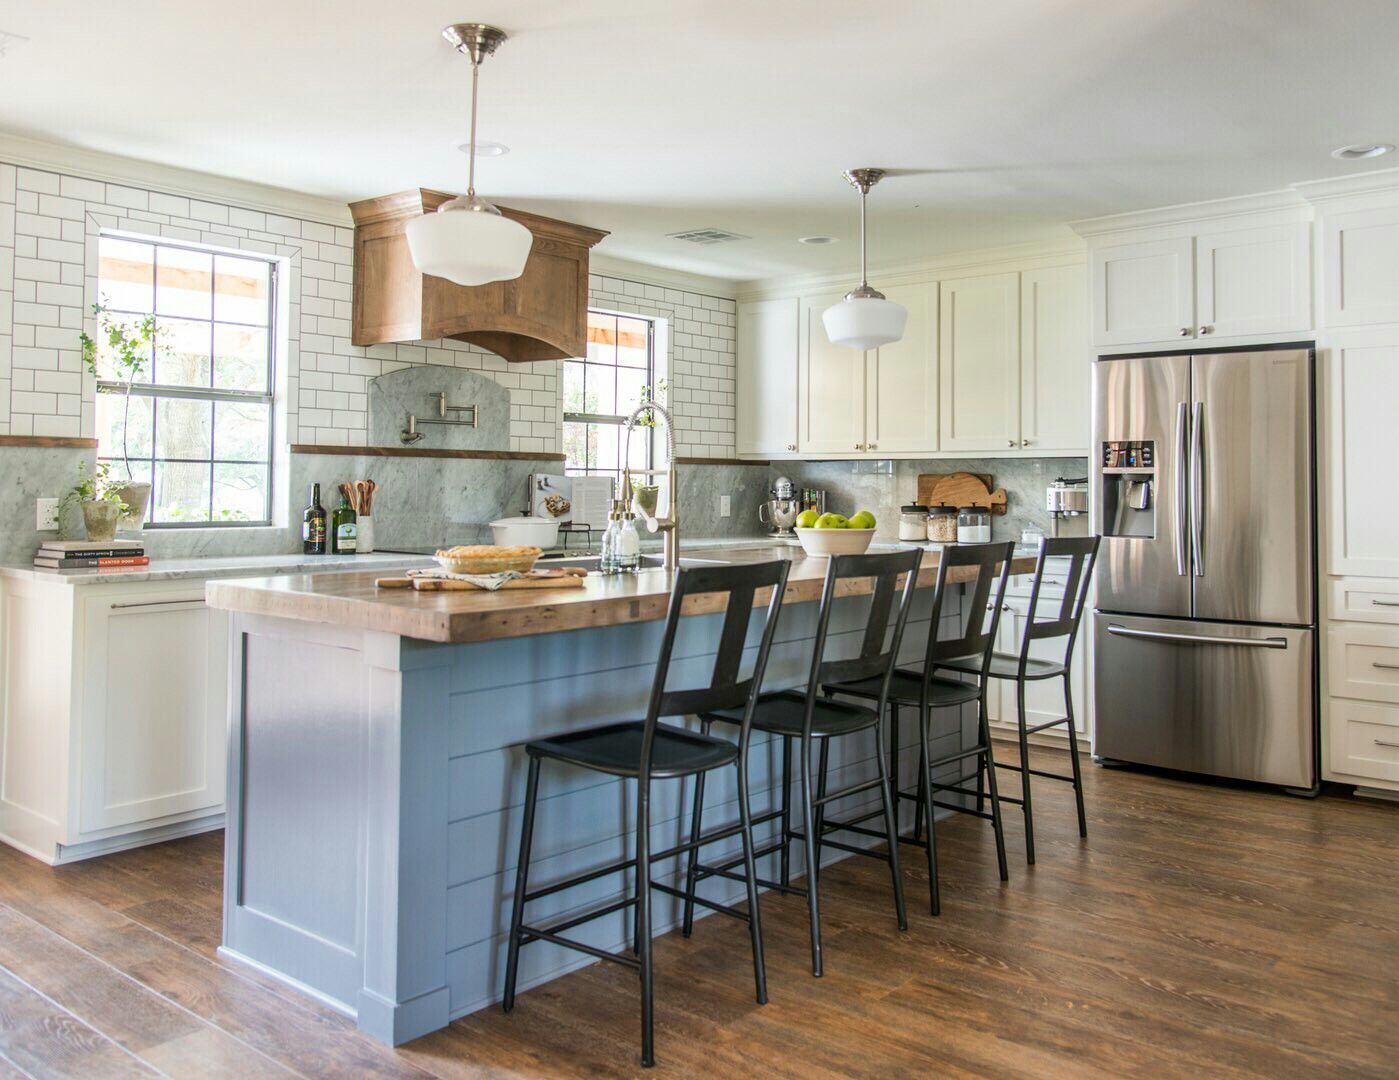 reclaimed bowling lane as kitchen island fixer upper kitchen on kitchen layout ideas with island joanna gaines id=92324